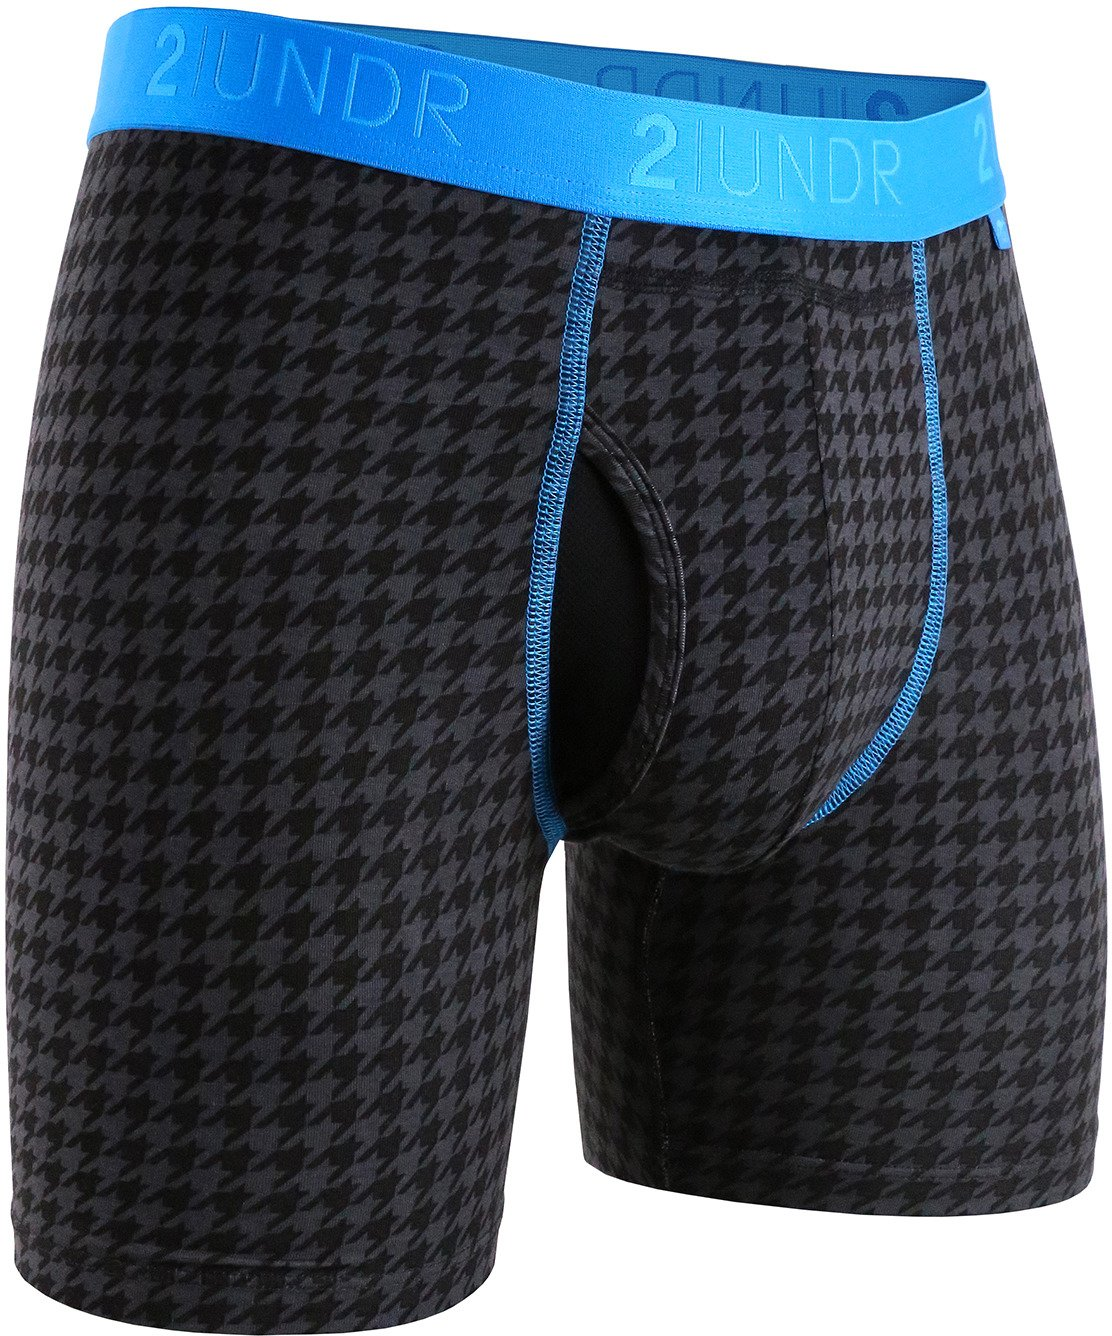 2UNDR Men's Swing Shift 6 in Dog Tooth Boxer Briefs 2-Pack